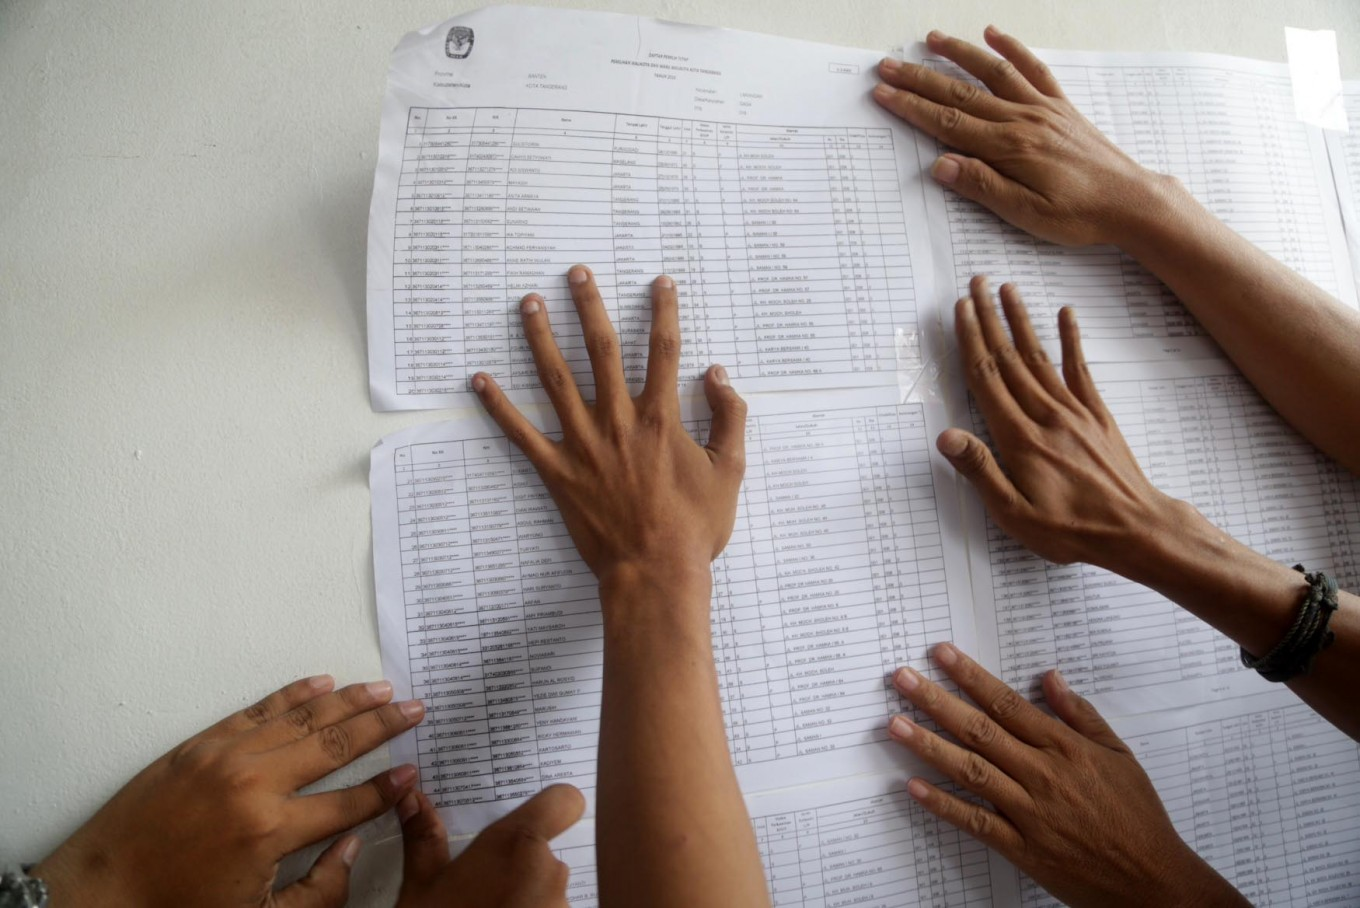 Polling station officials put up the eligible voter list in Kampung Gaga, Larangan, Tangerang regency, Banten, on Tuesday, June 26, 2018. A total of 323 voters were slated to cast their votes at the polling station. JP/Wendra Ajistyatama